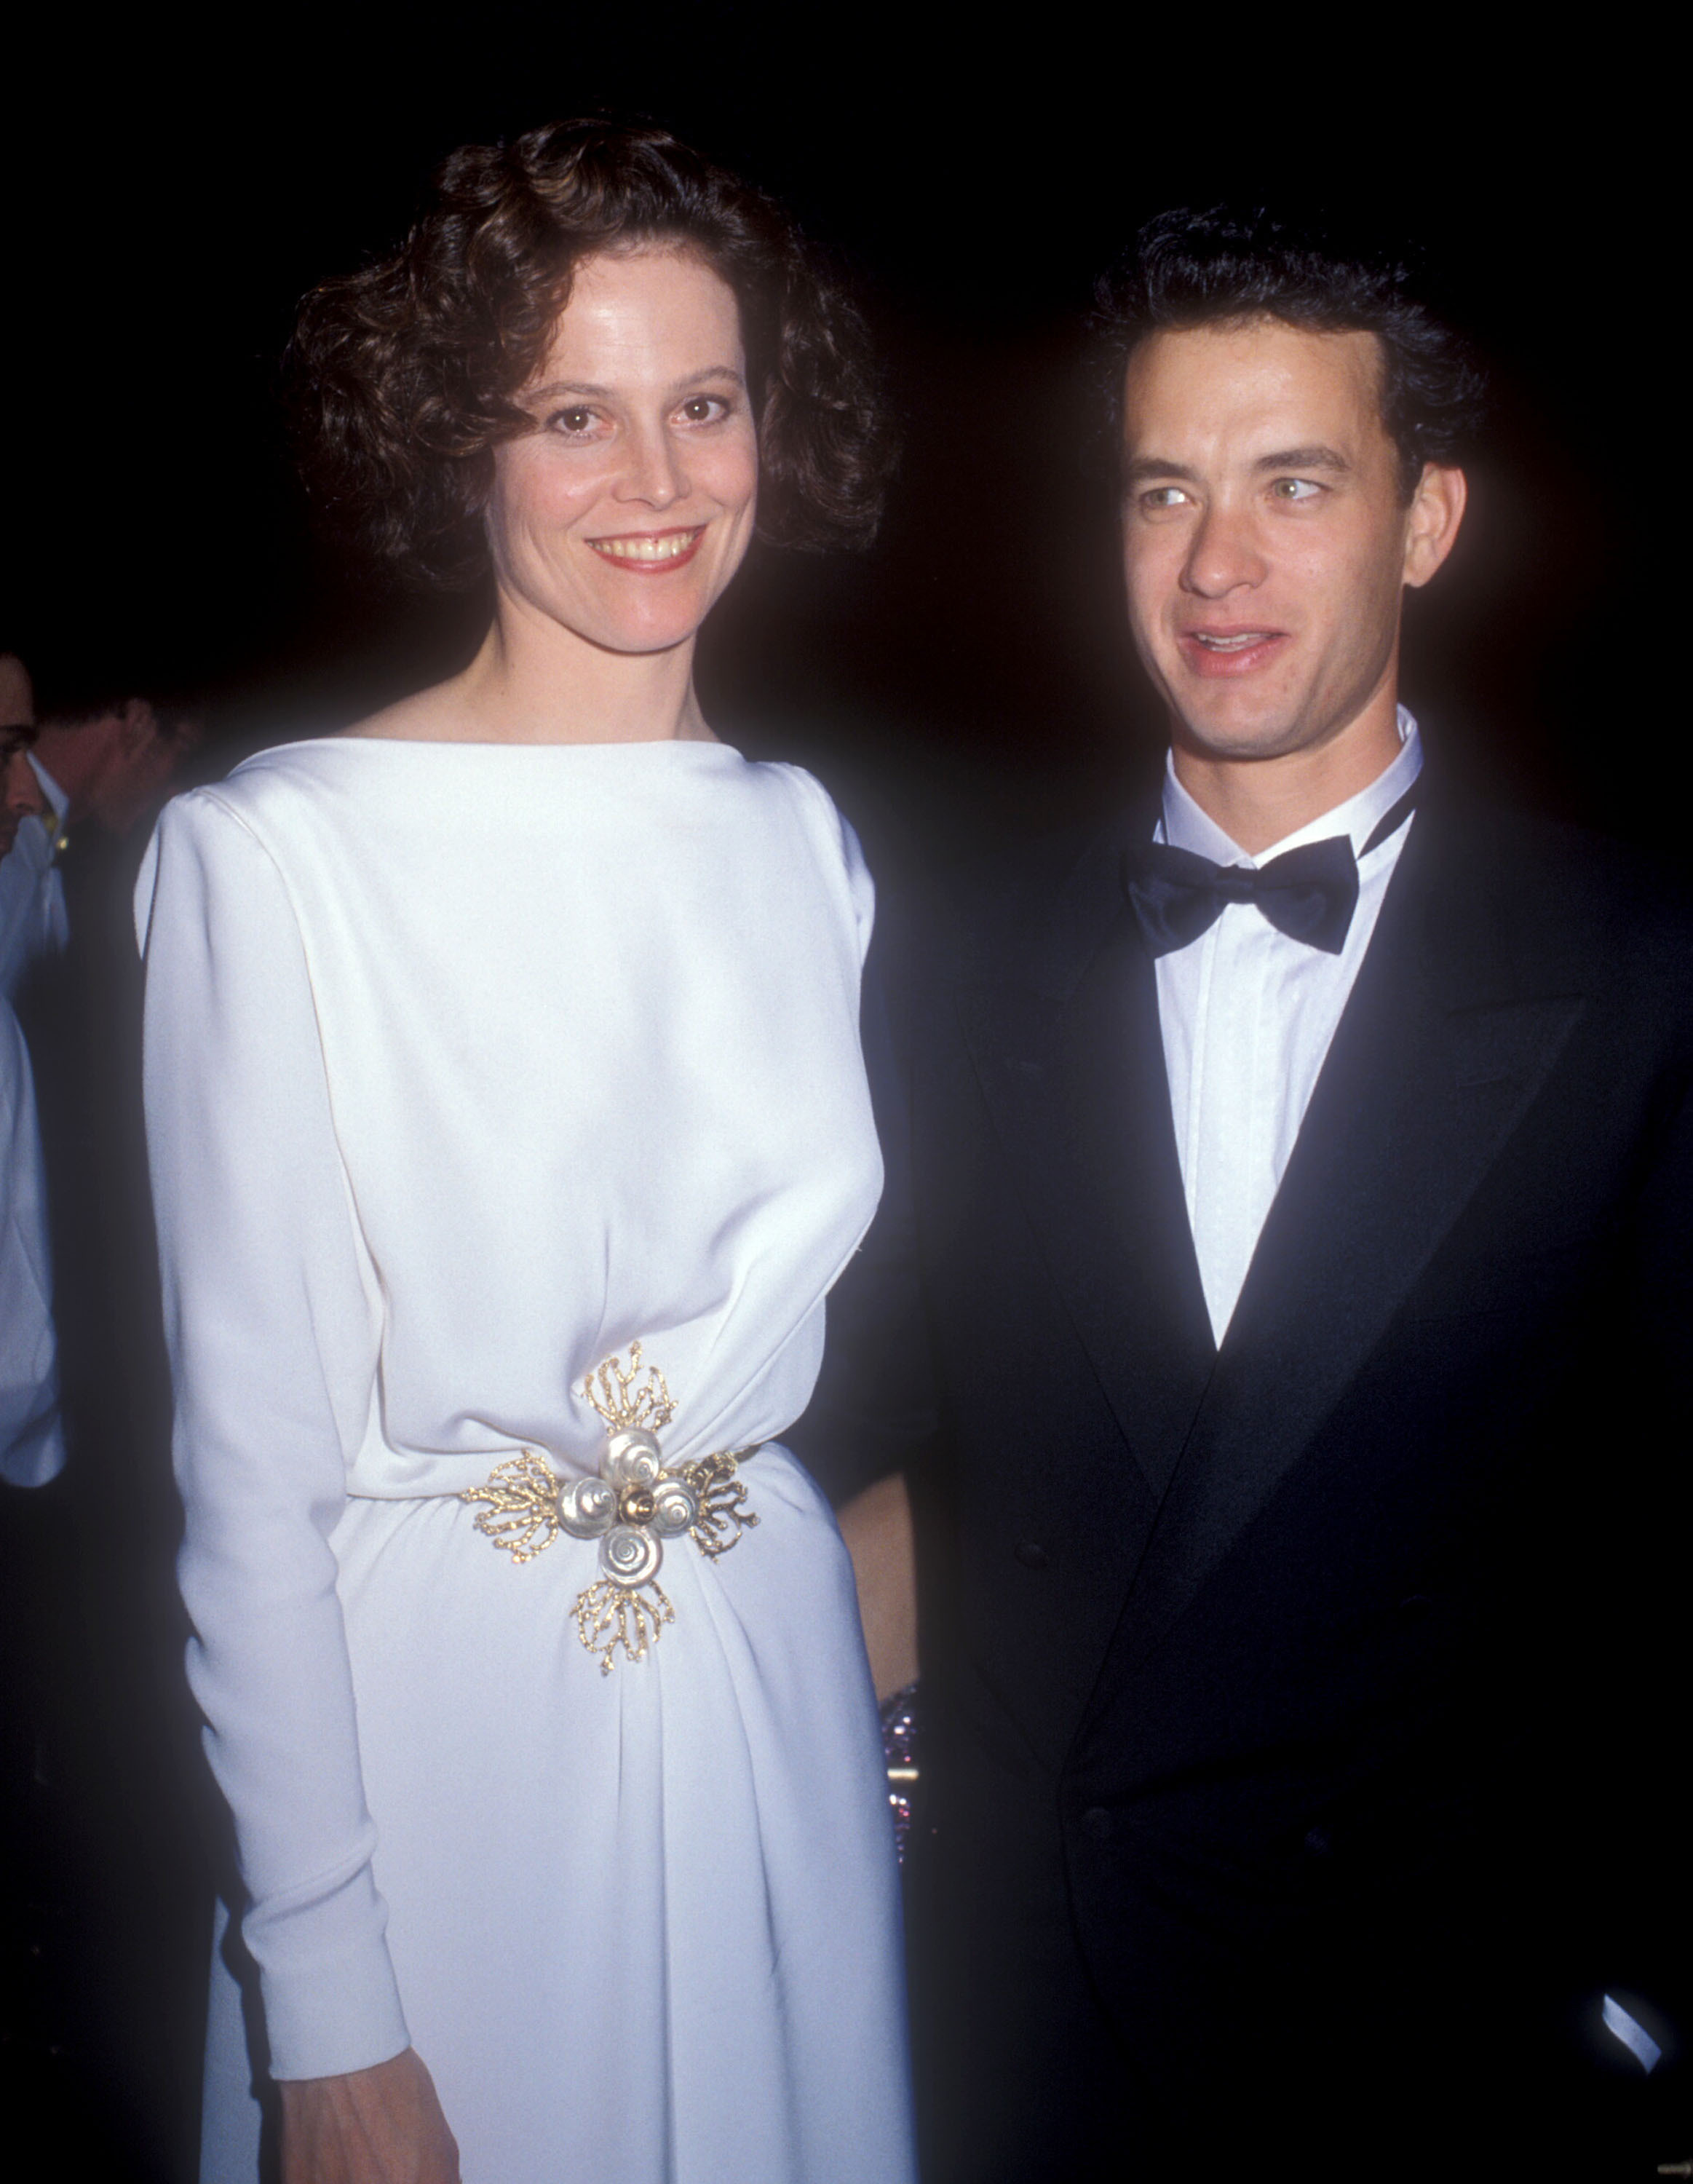 Sigourney Weaver and Tom Hanks pose at the 61st annual Academy Awards in Los Angeles on March 28, 1989.